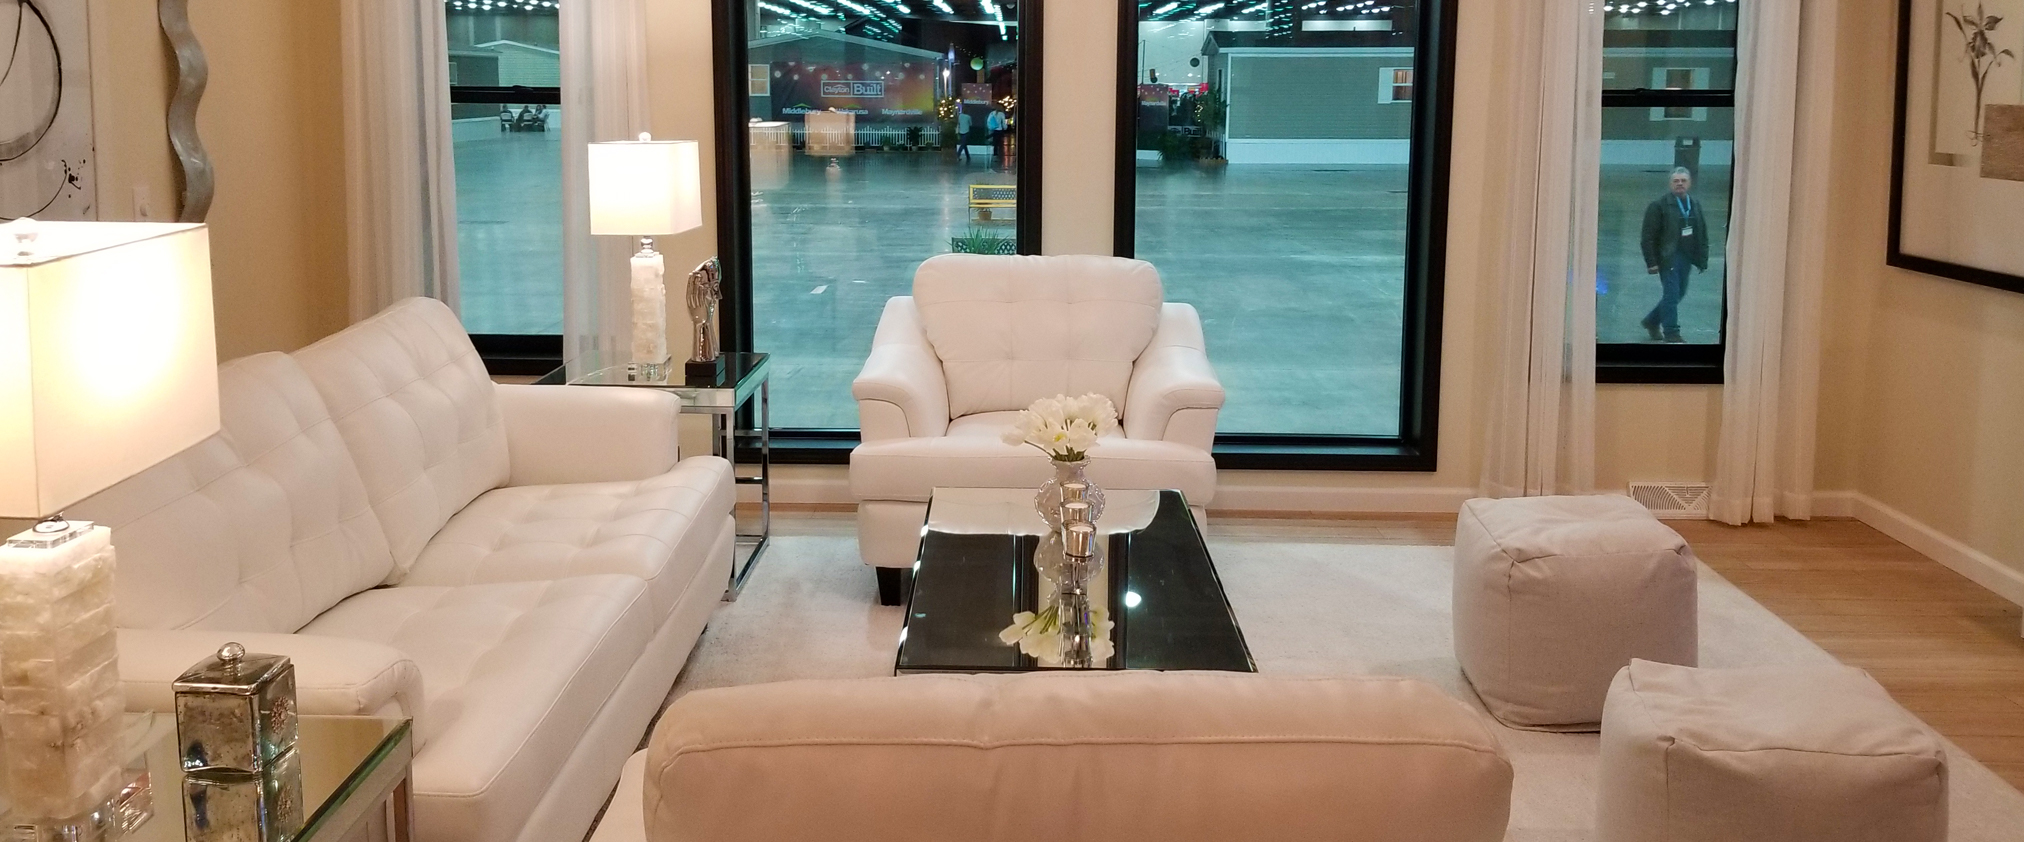 Living room looking out onto show floor